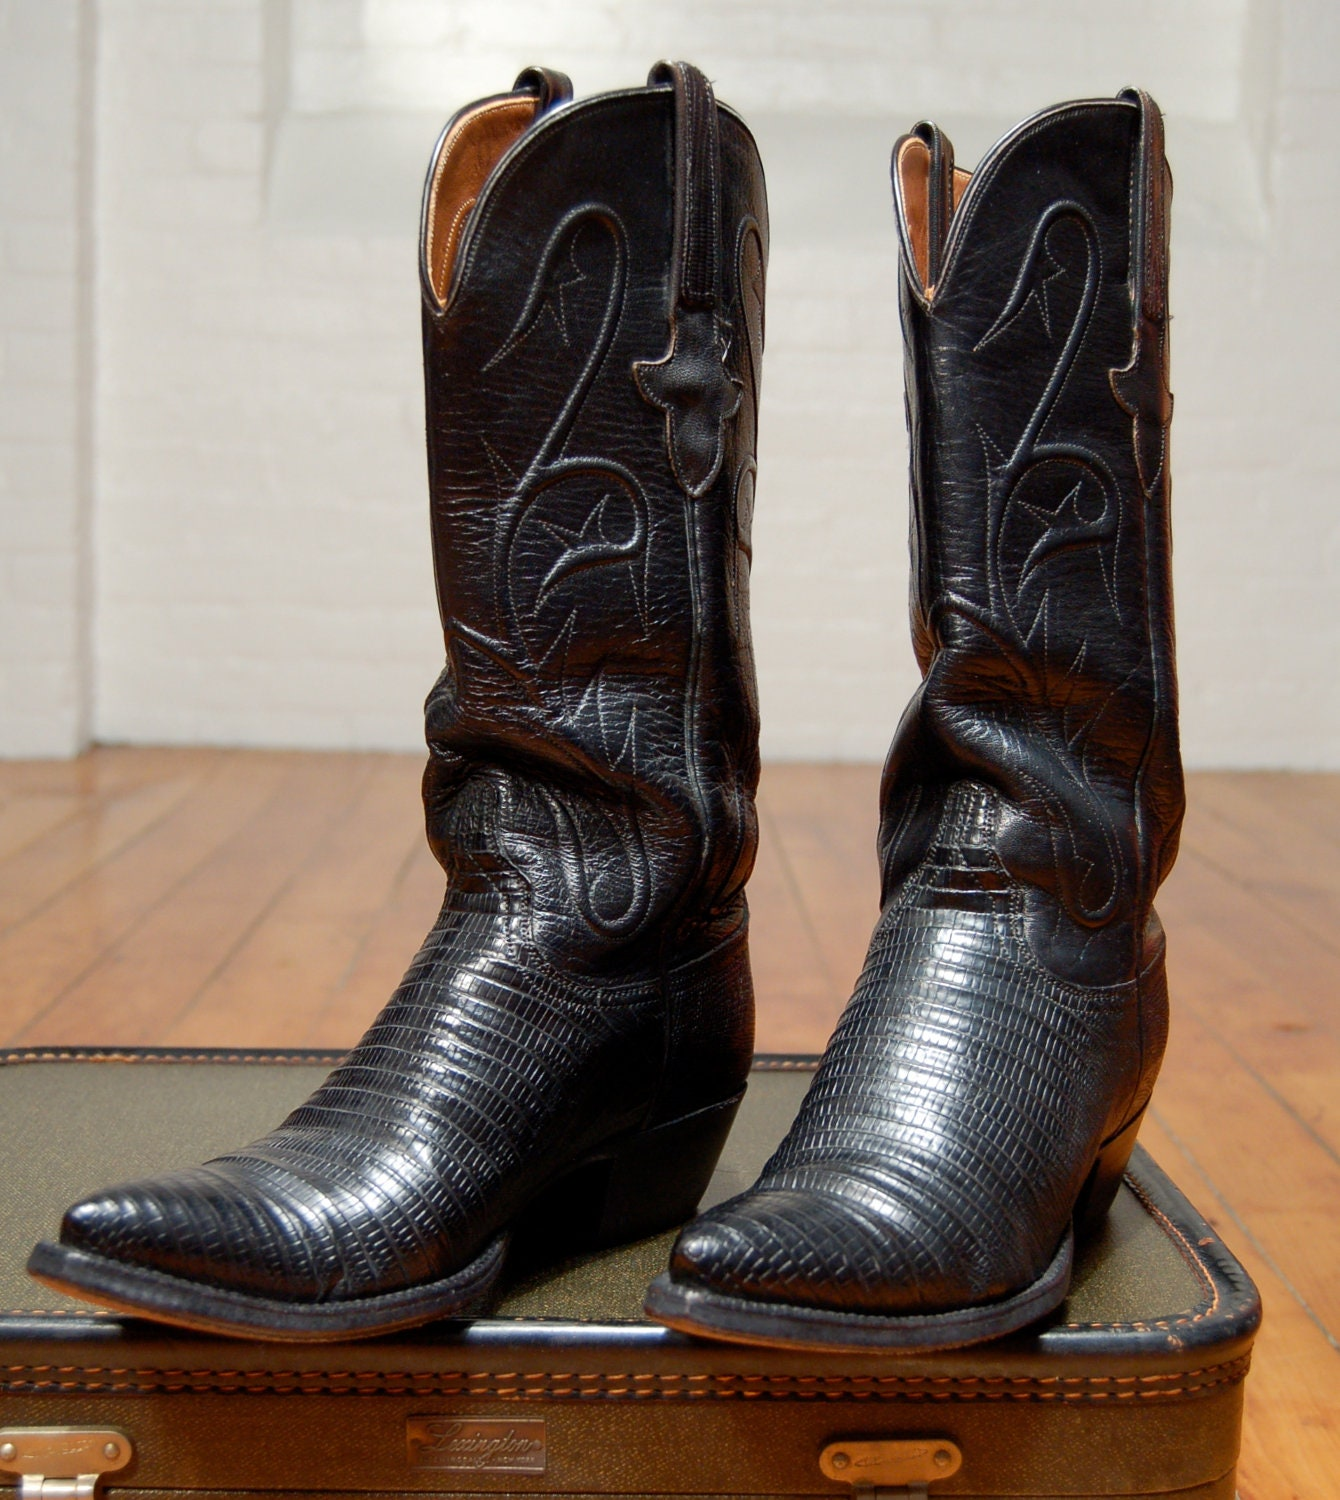 Wonderful Corral Womenu0026#39;s Laser Inlay Cowboy Boots With Studs - Black/ Cognac